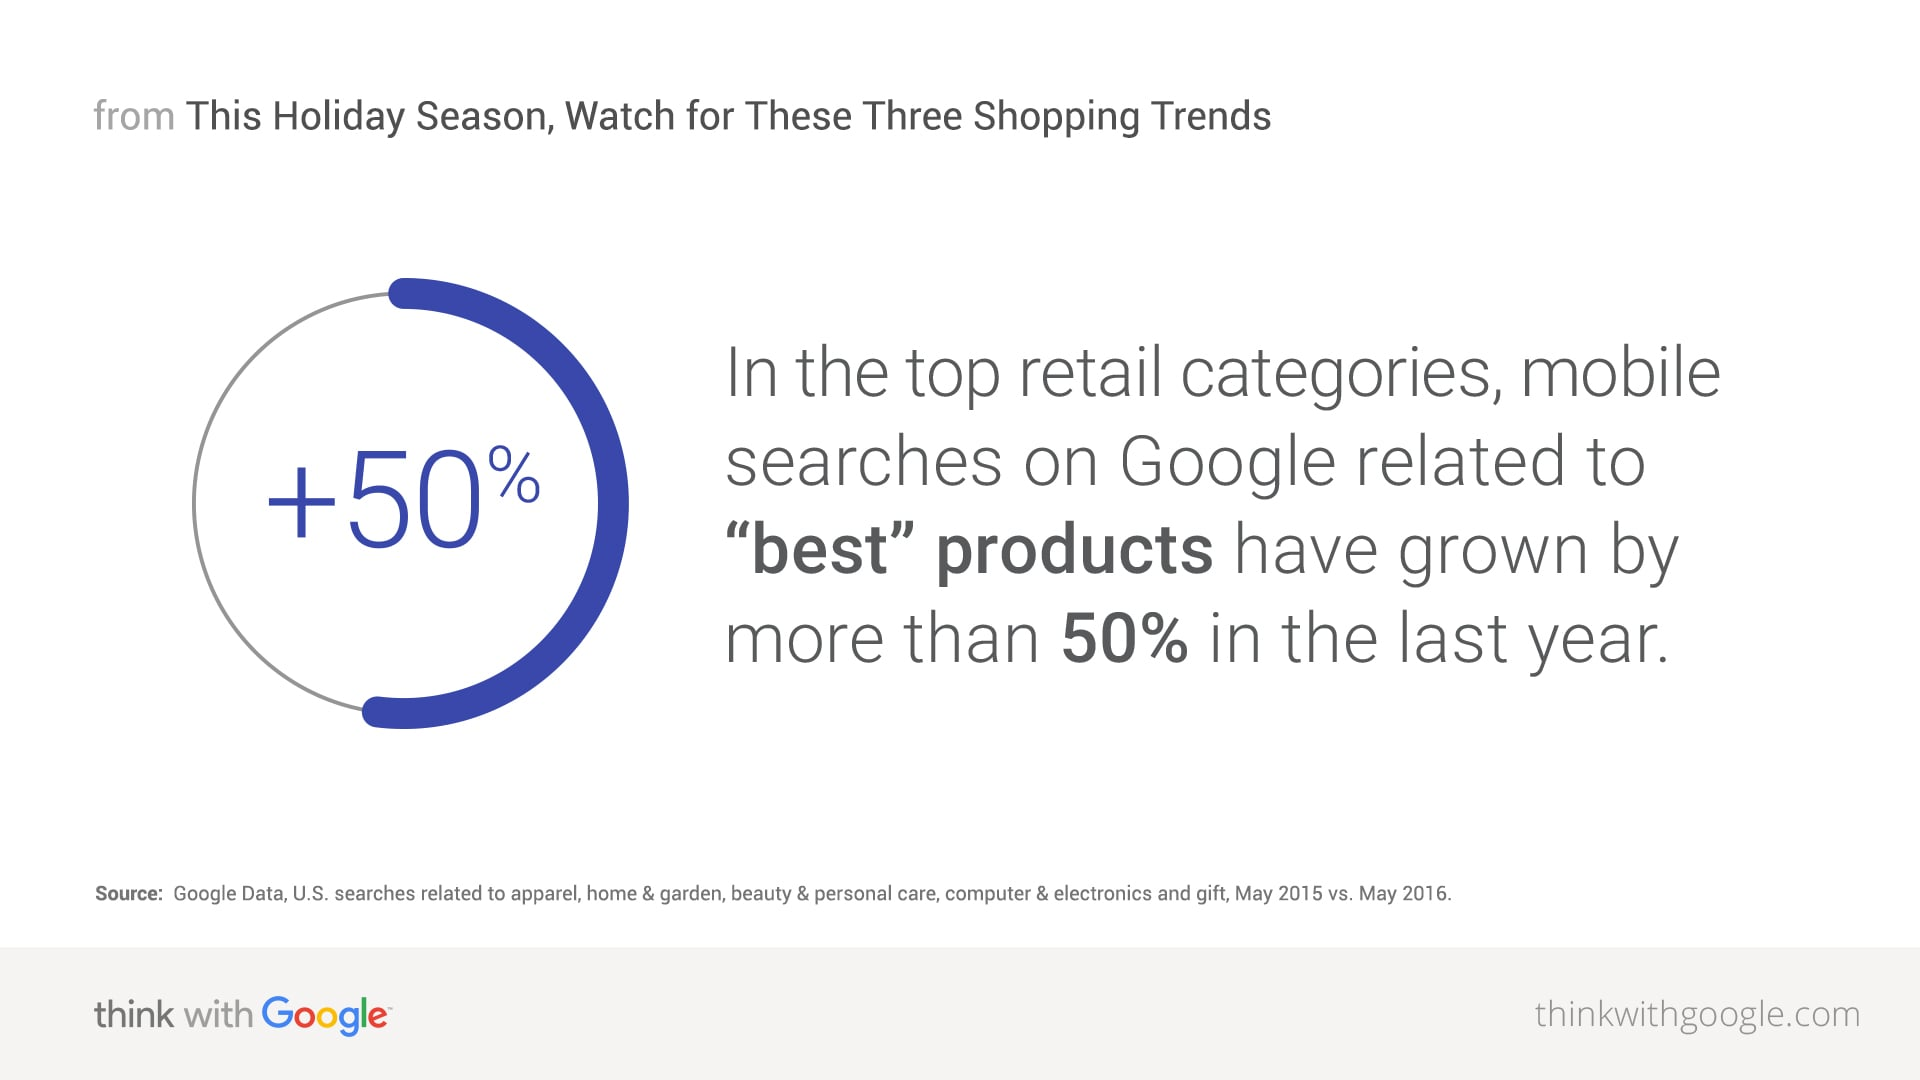 This Holiday Season, Watch for These 3 Shopping Trends